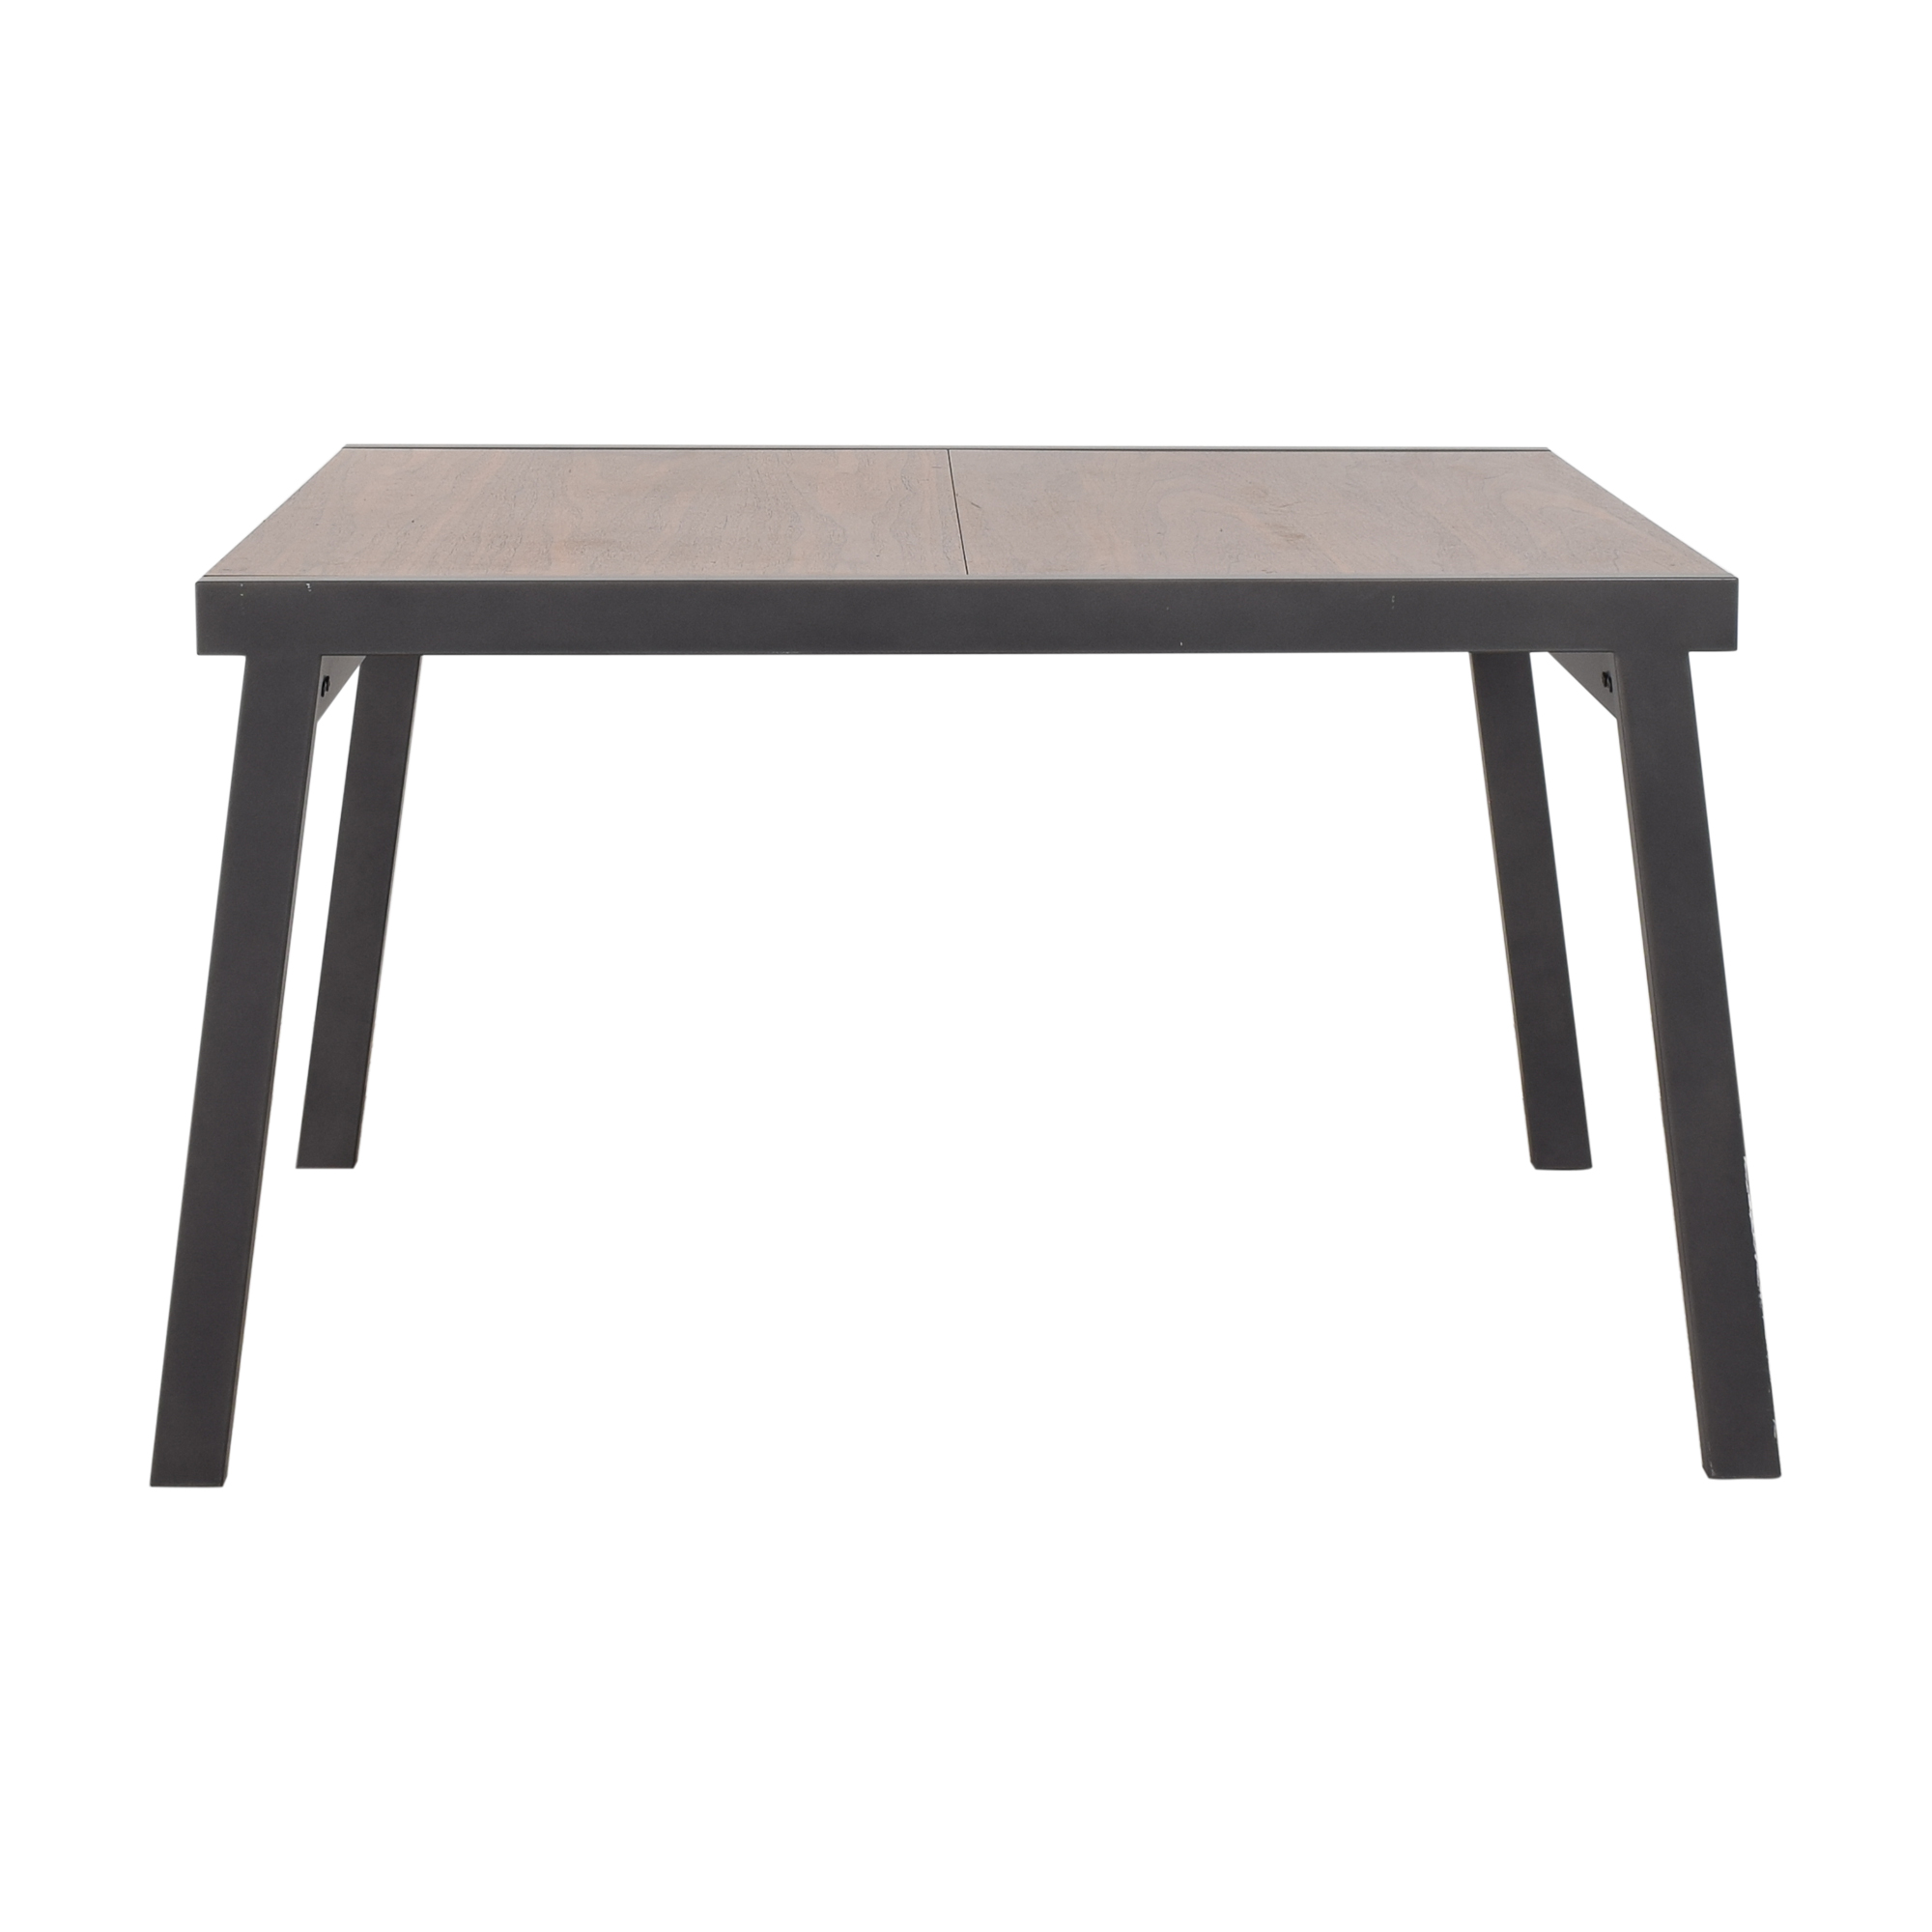 shop CB2 Extendable Dining Table CB2 Dinner Tables